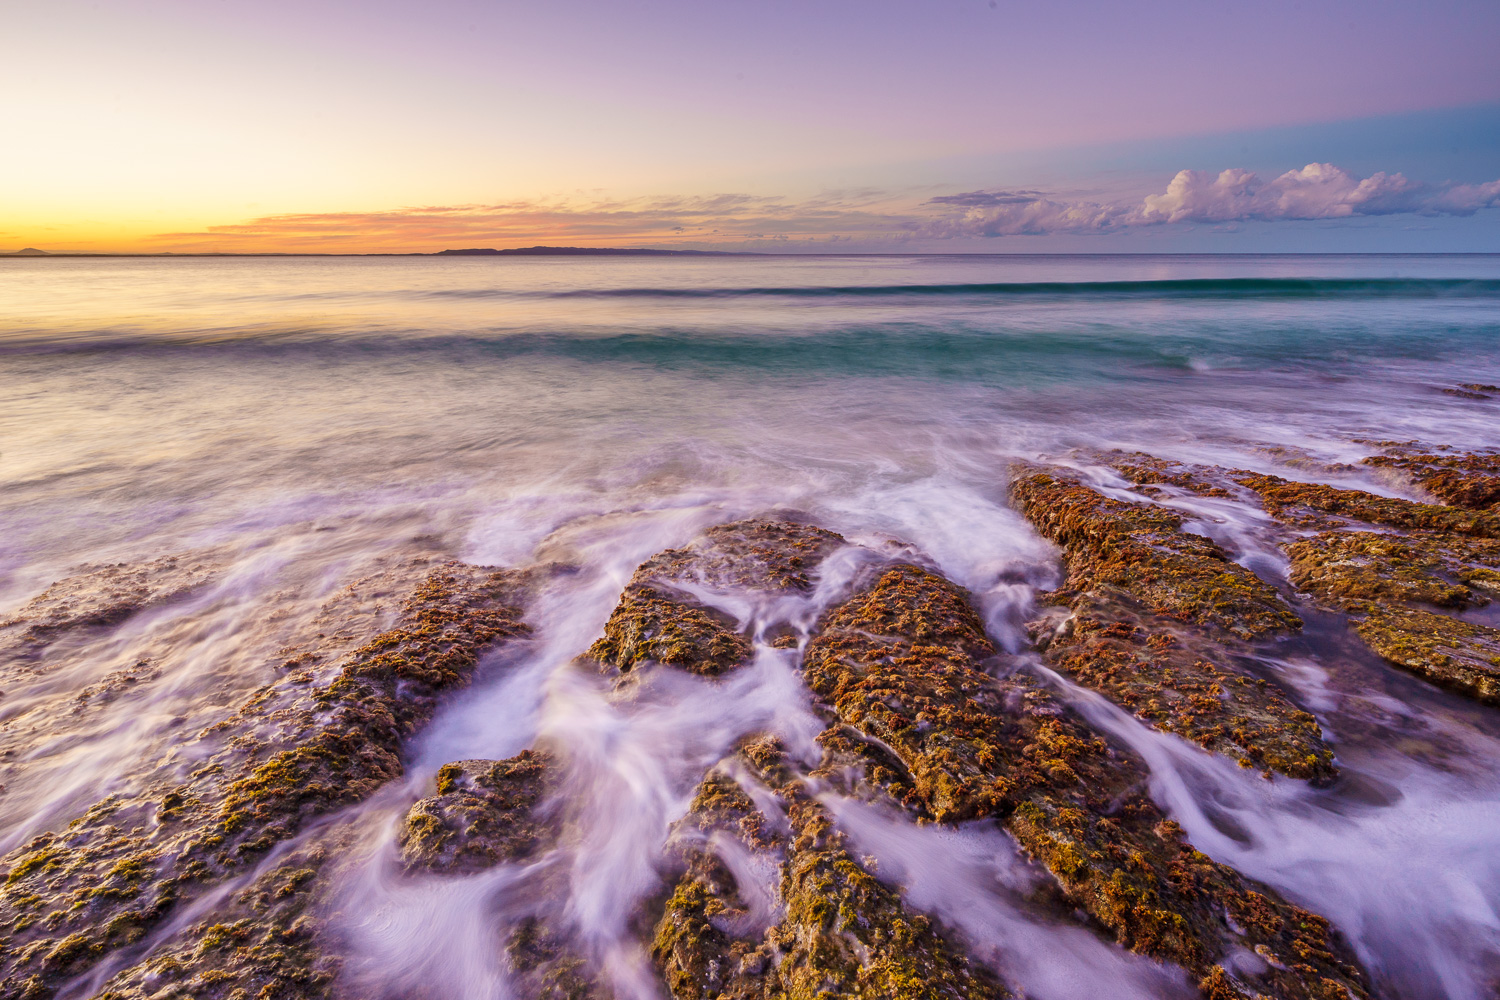 How to Work the Scene to Get More Great Photos - long exposure of ocean waves sunset